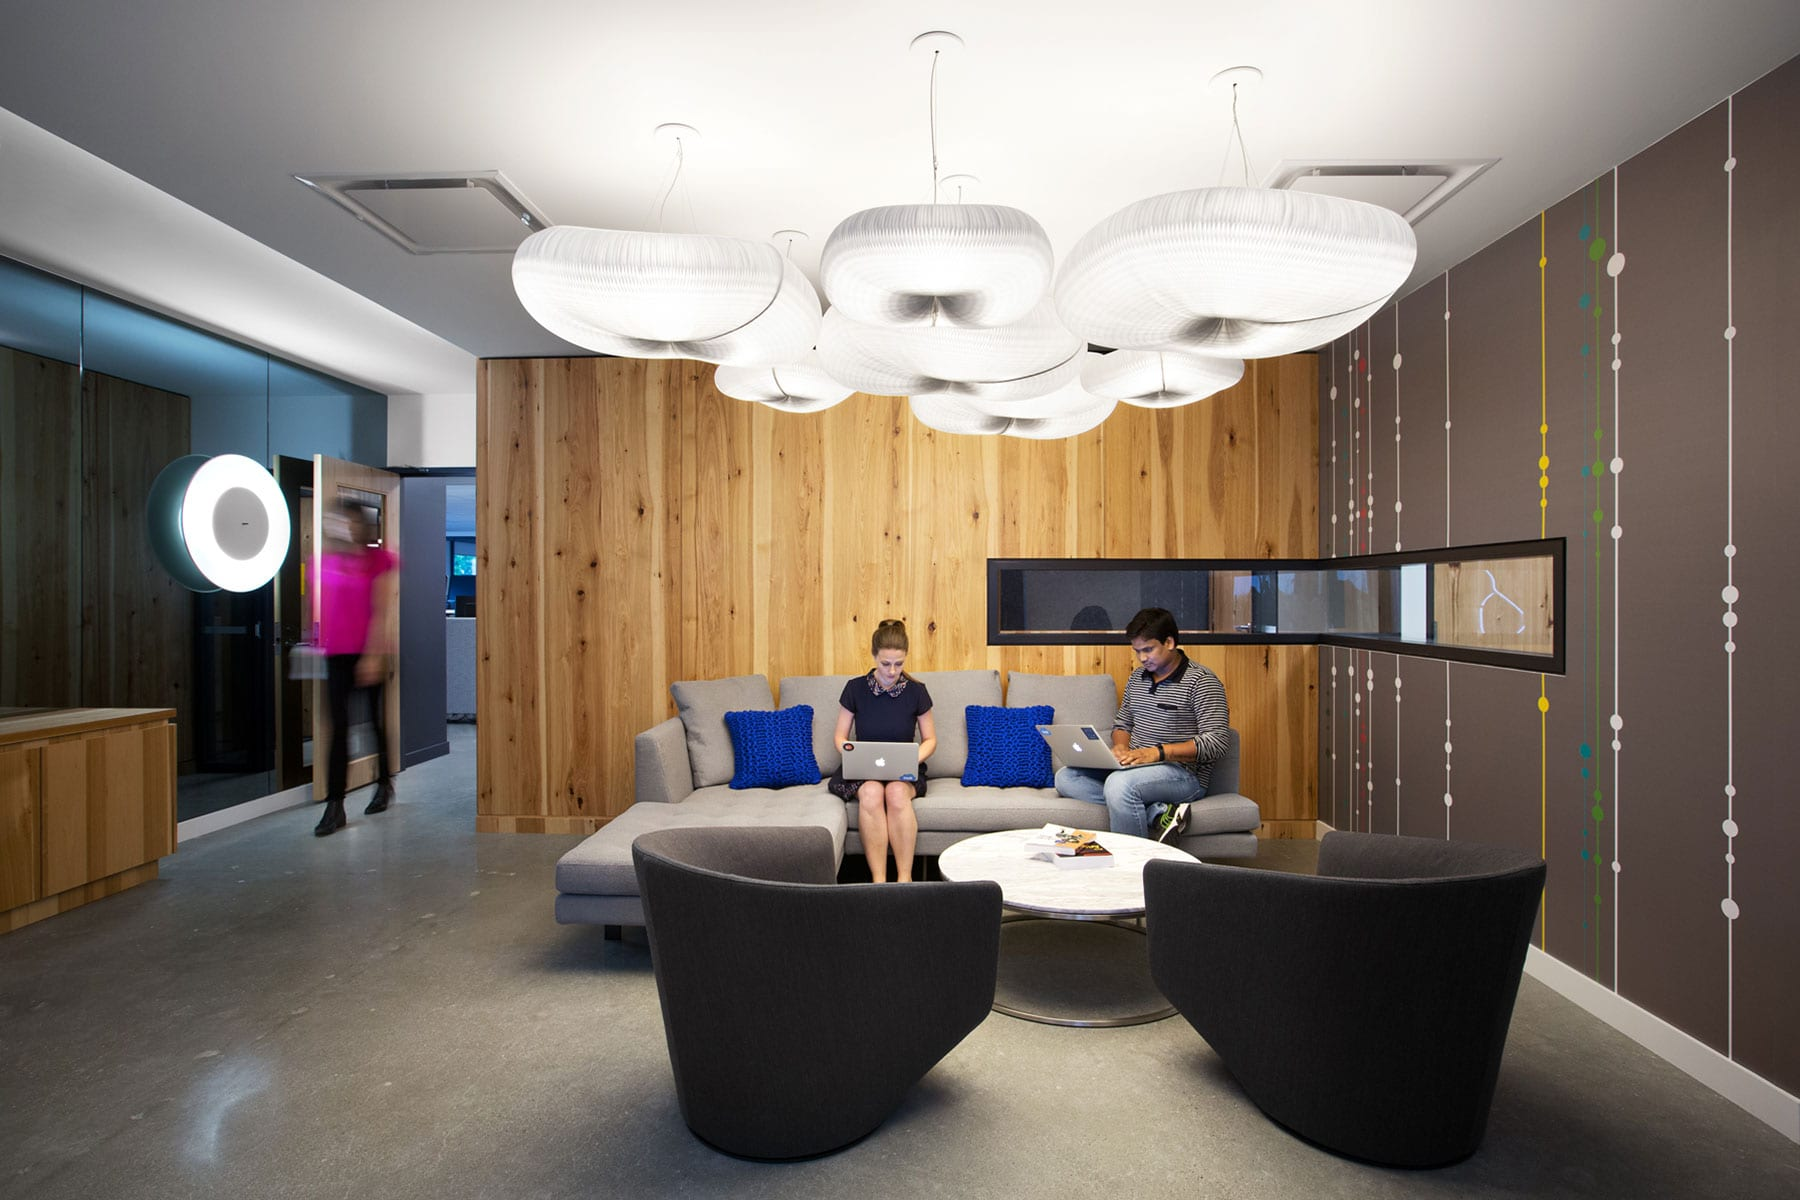 Office fitout for D&B Cloud Innovation Centre - flexible collaborative space for teamwork with cloud lights